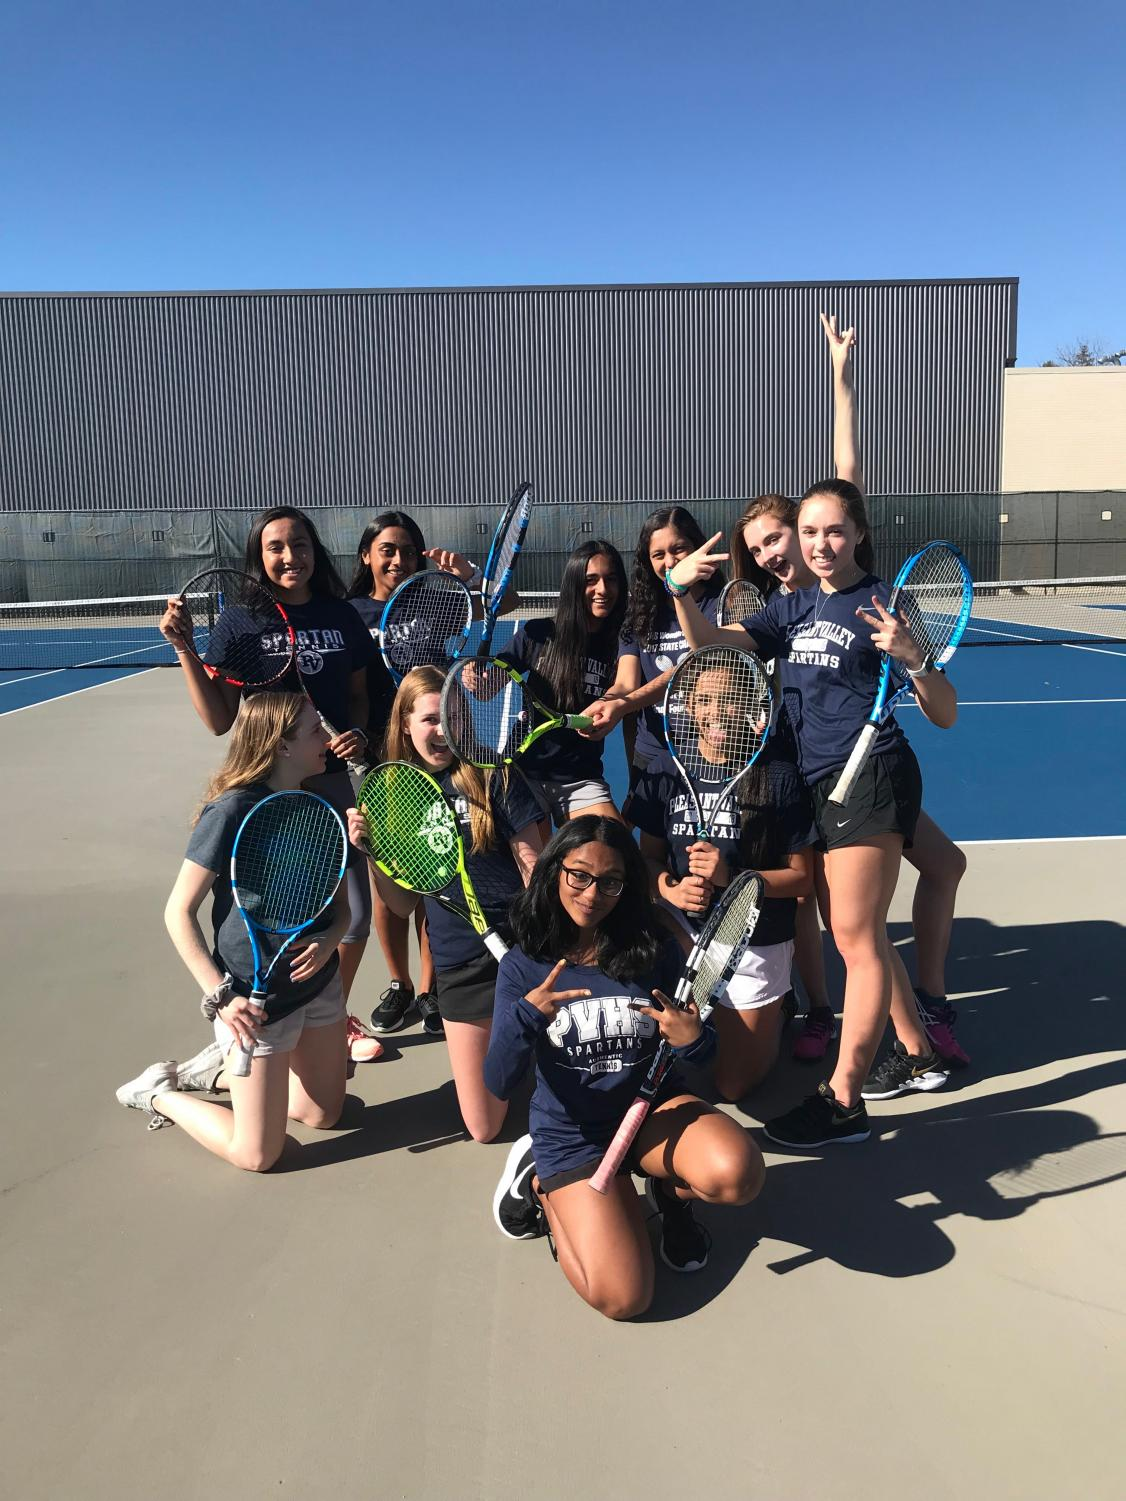 The Varsity team lets loose while they prepare for the season ahead.